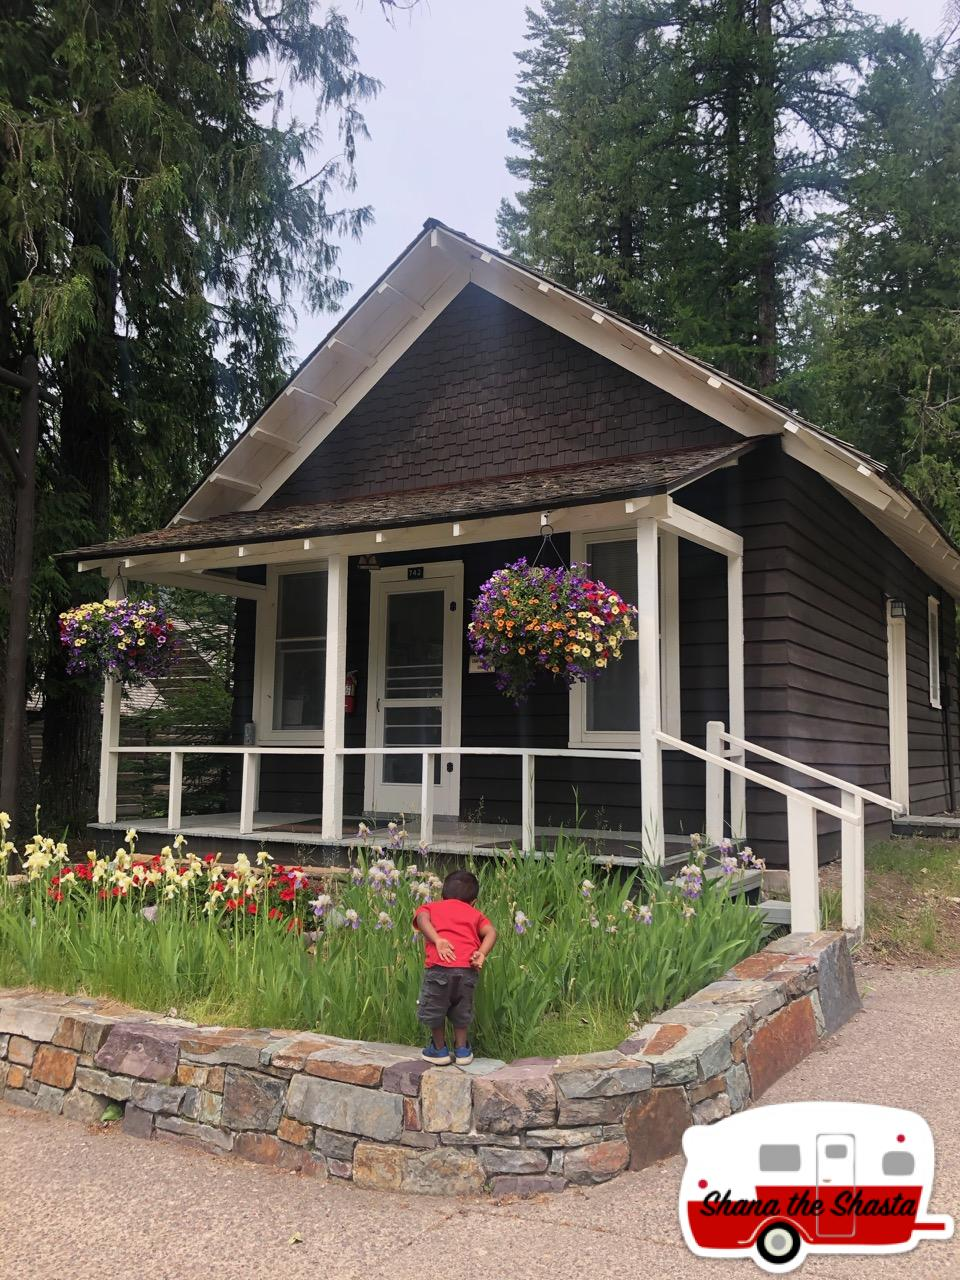 Smelling-Flowers-at-McDonald-Lodge-Cabin